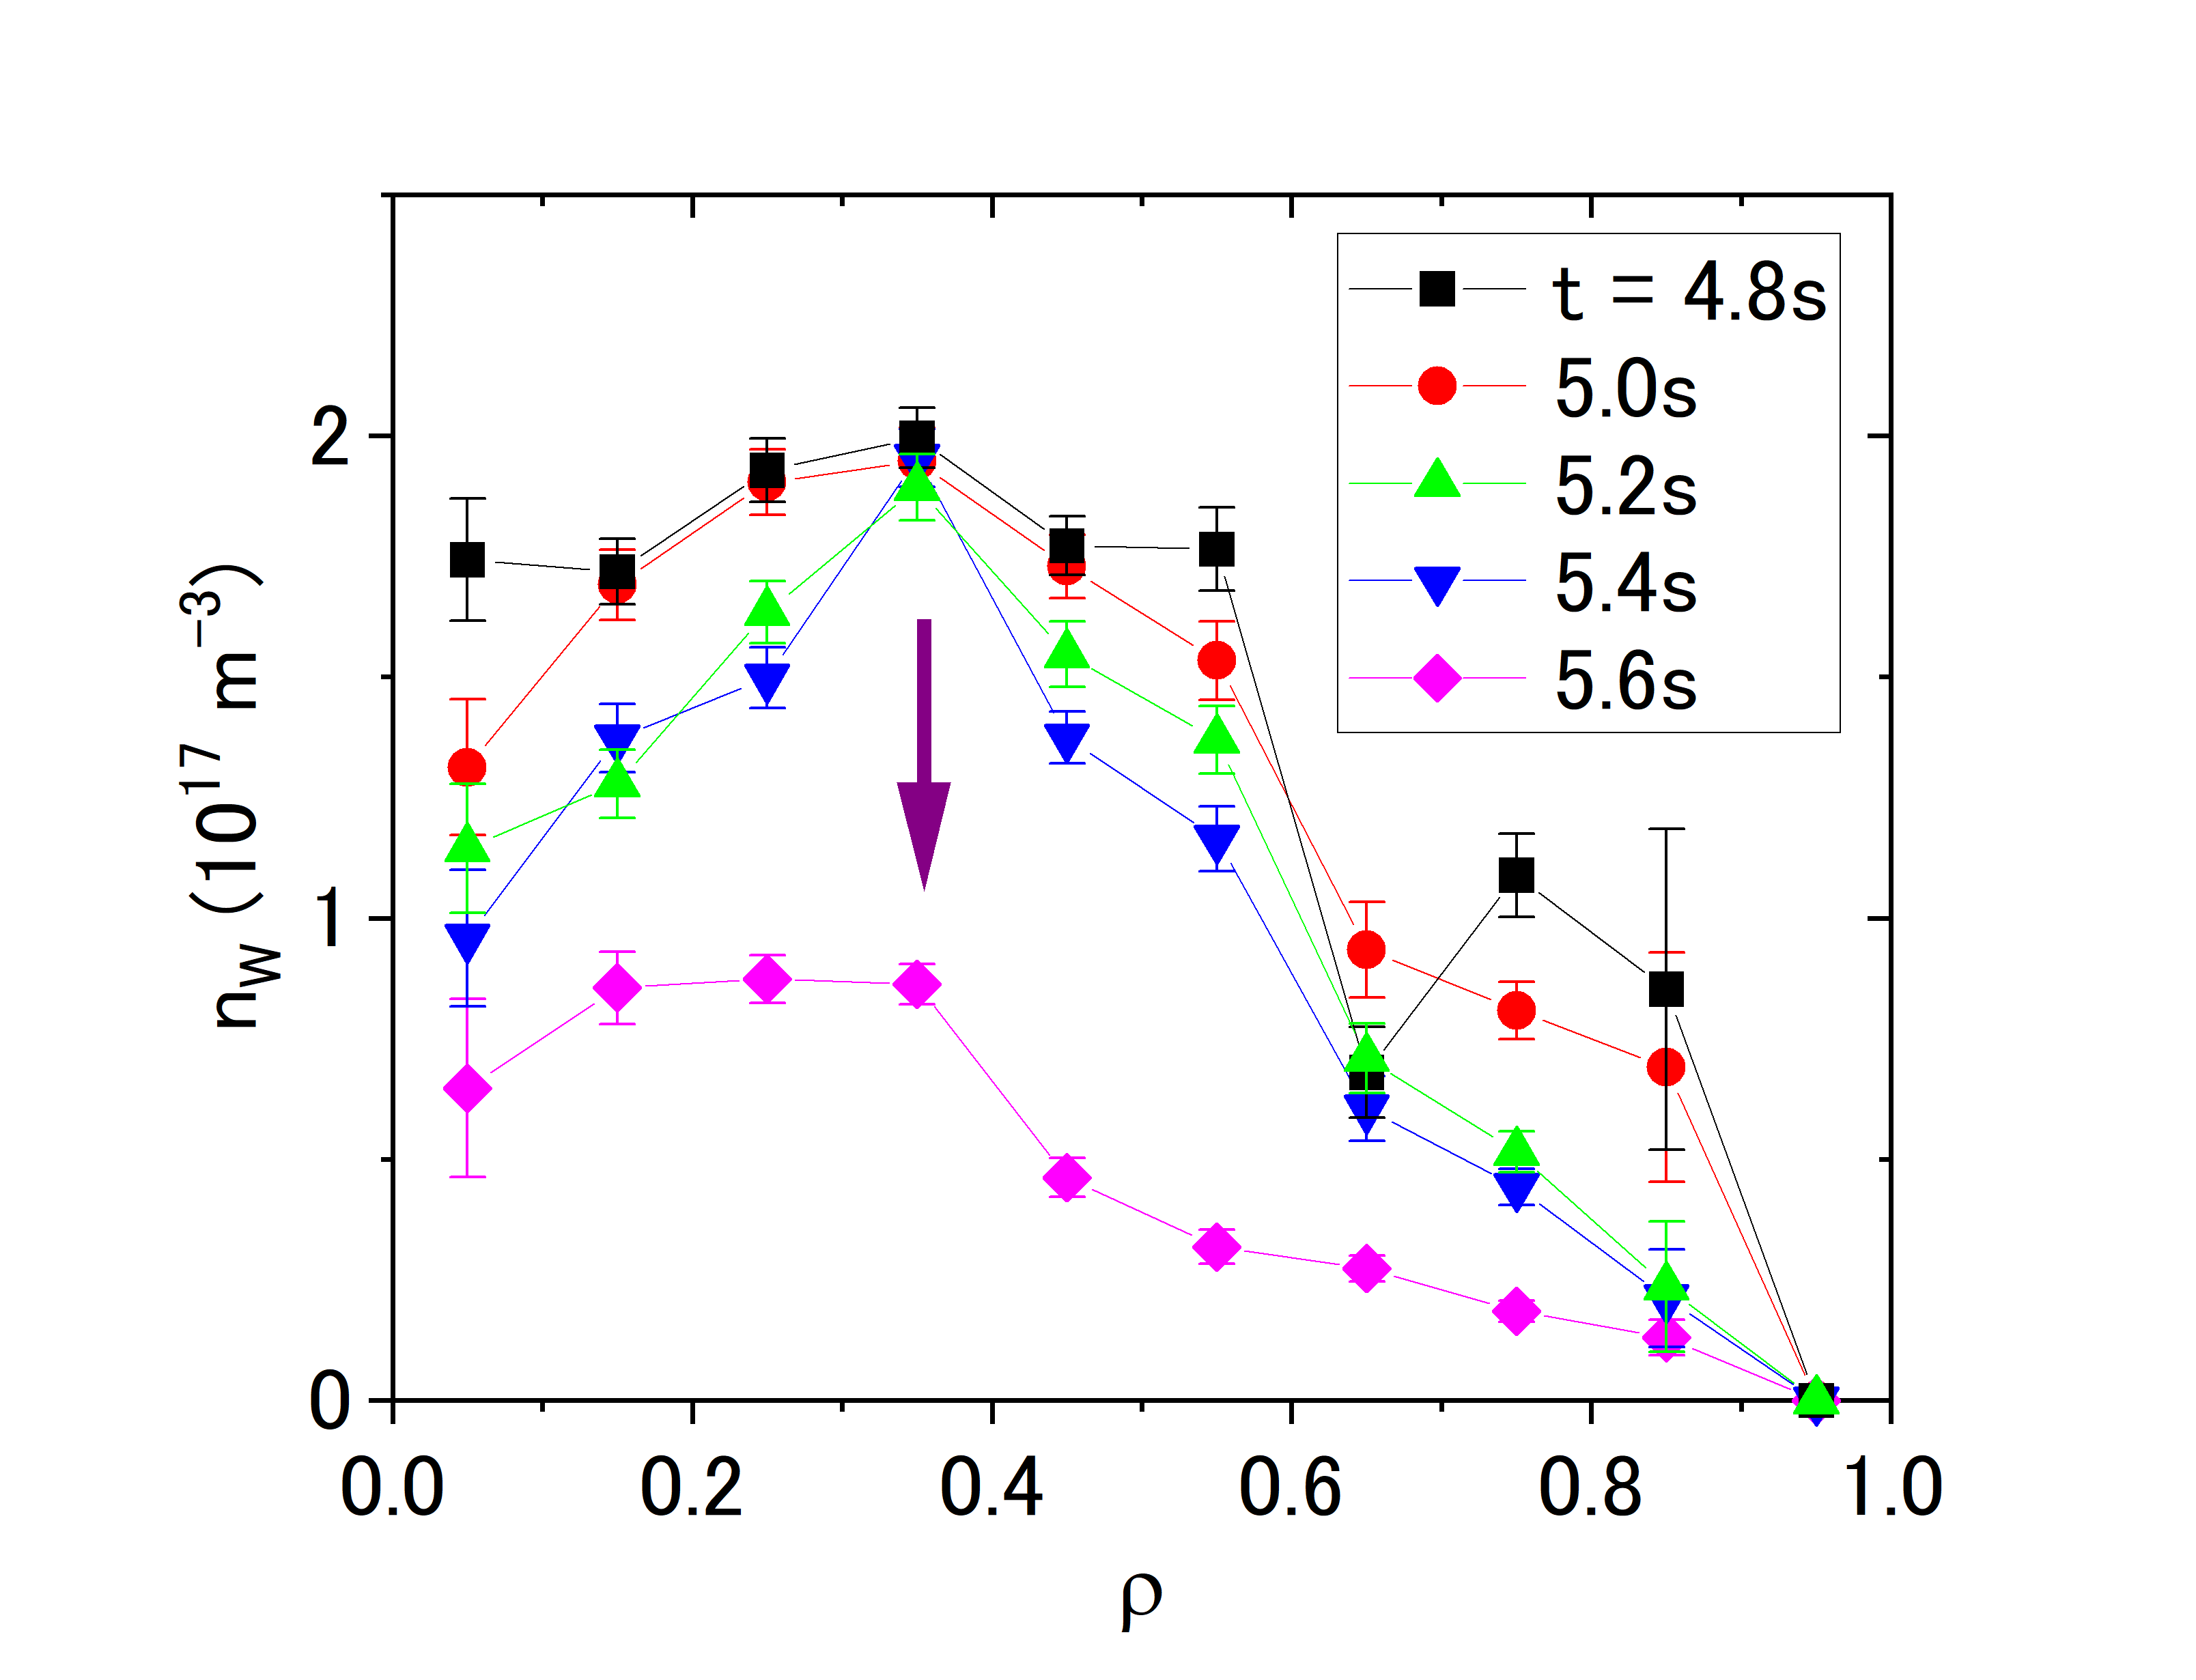 Radial profiles of total tungsten density from $t$ = 4.8 s at 0.2 s interval.